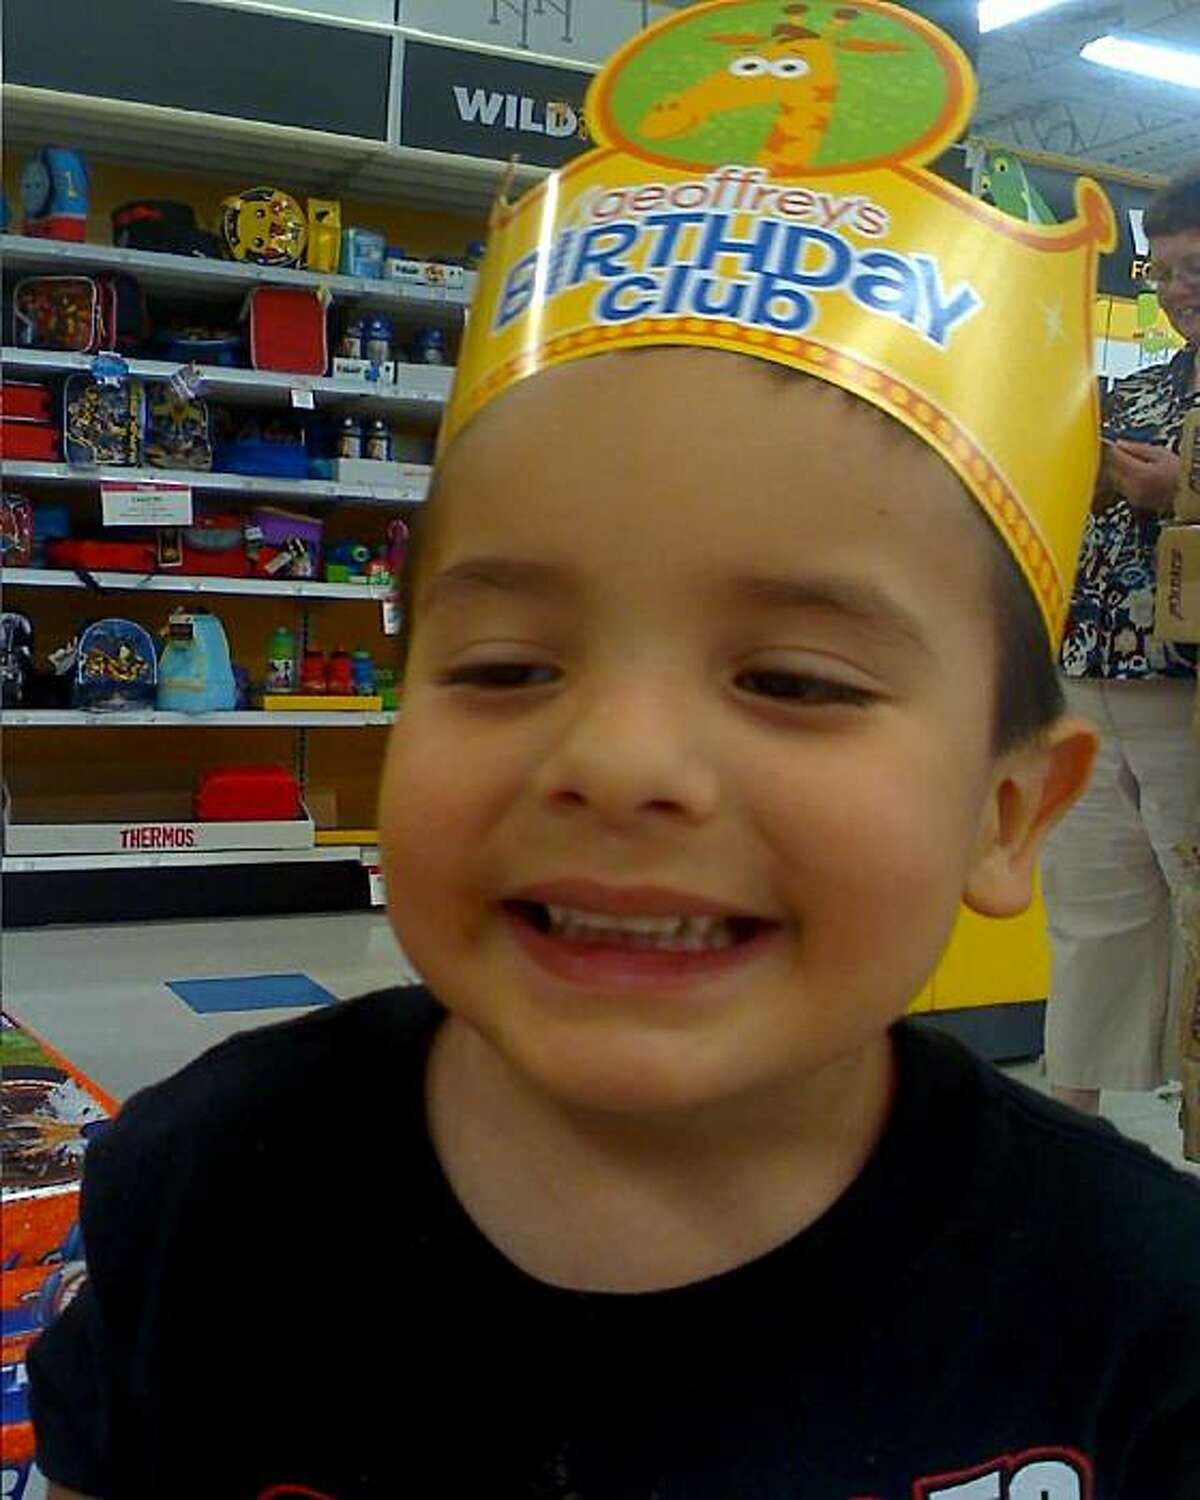 Four-year-old Juliani Cardenas, kidnapped from his grandmother's arms in the Stanislaus County town of Patterson on Jan. 18, 2011.